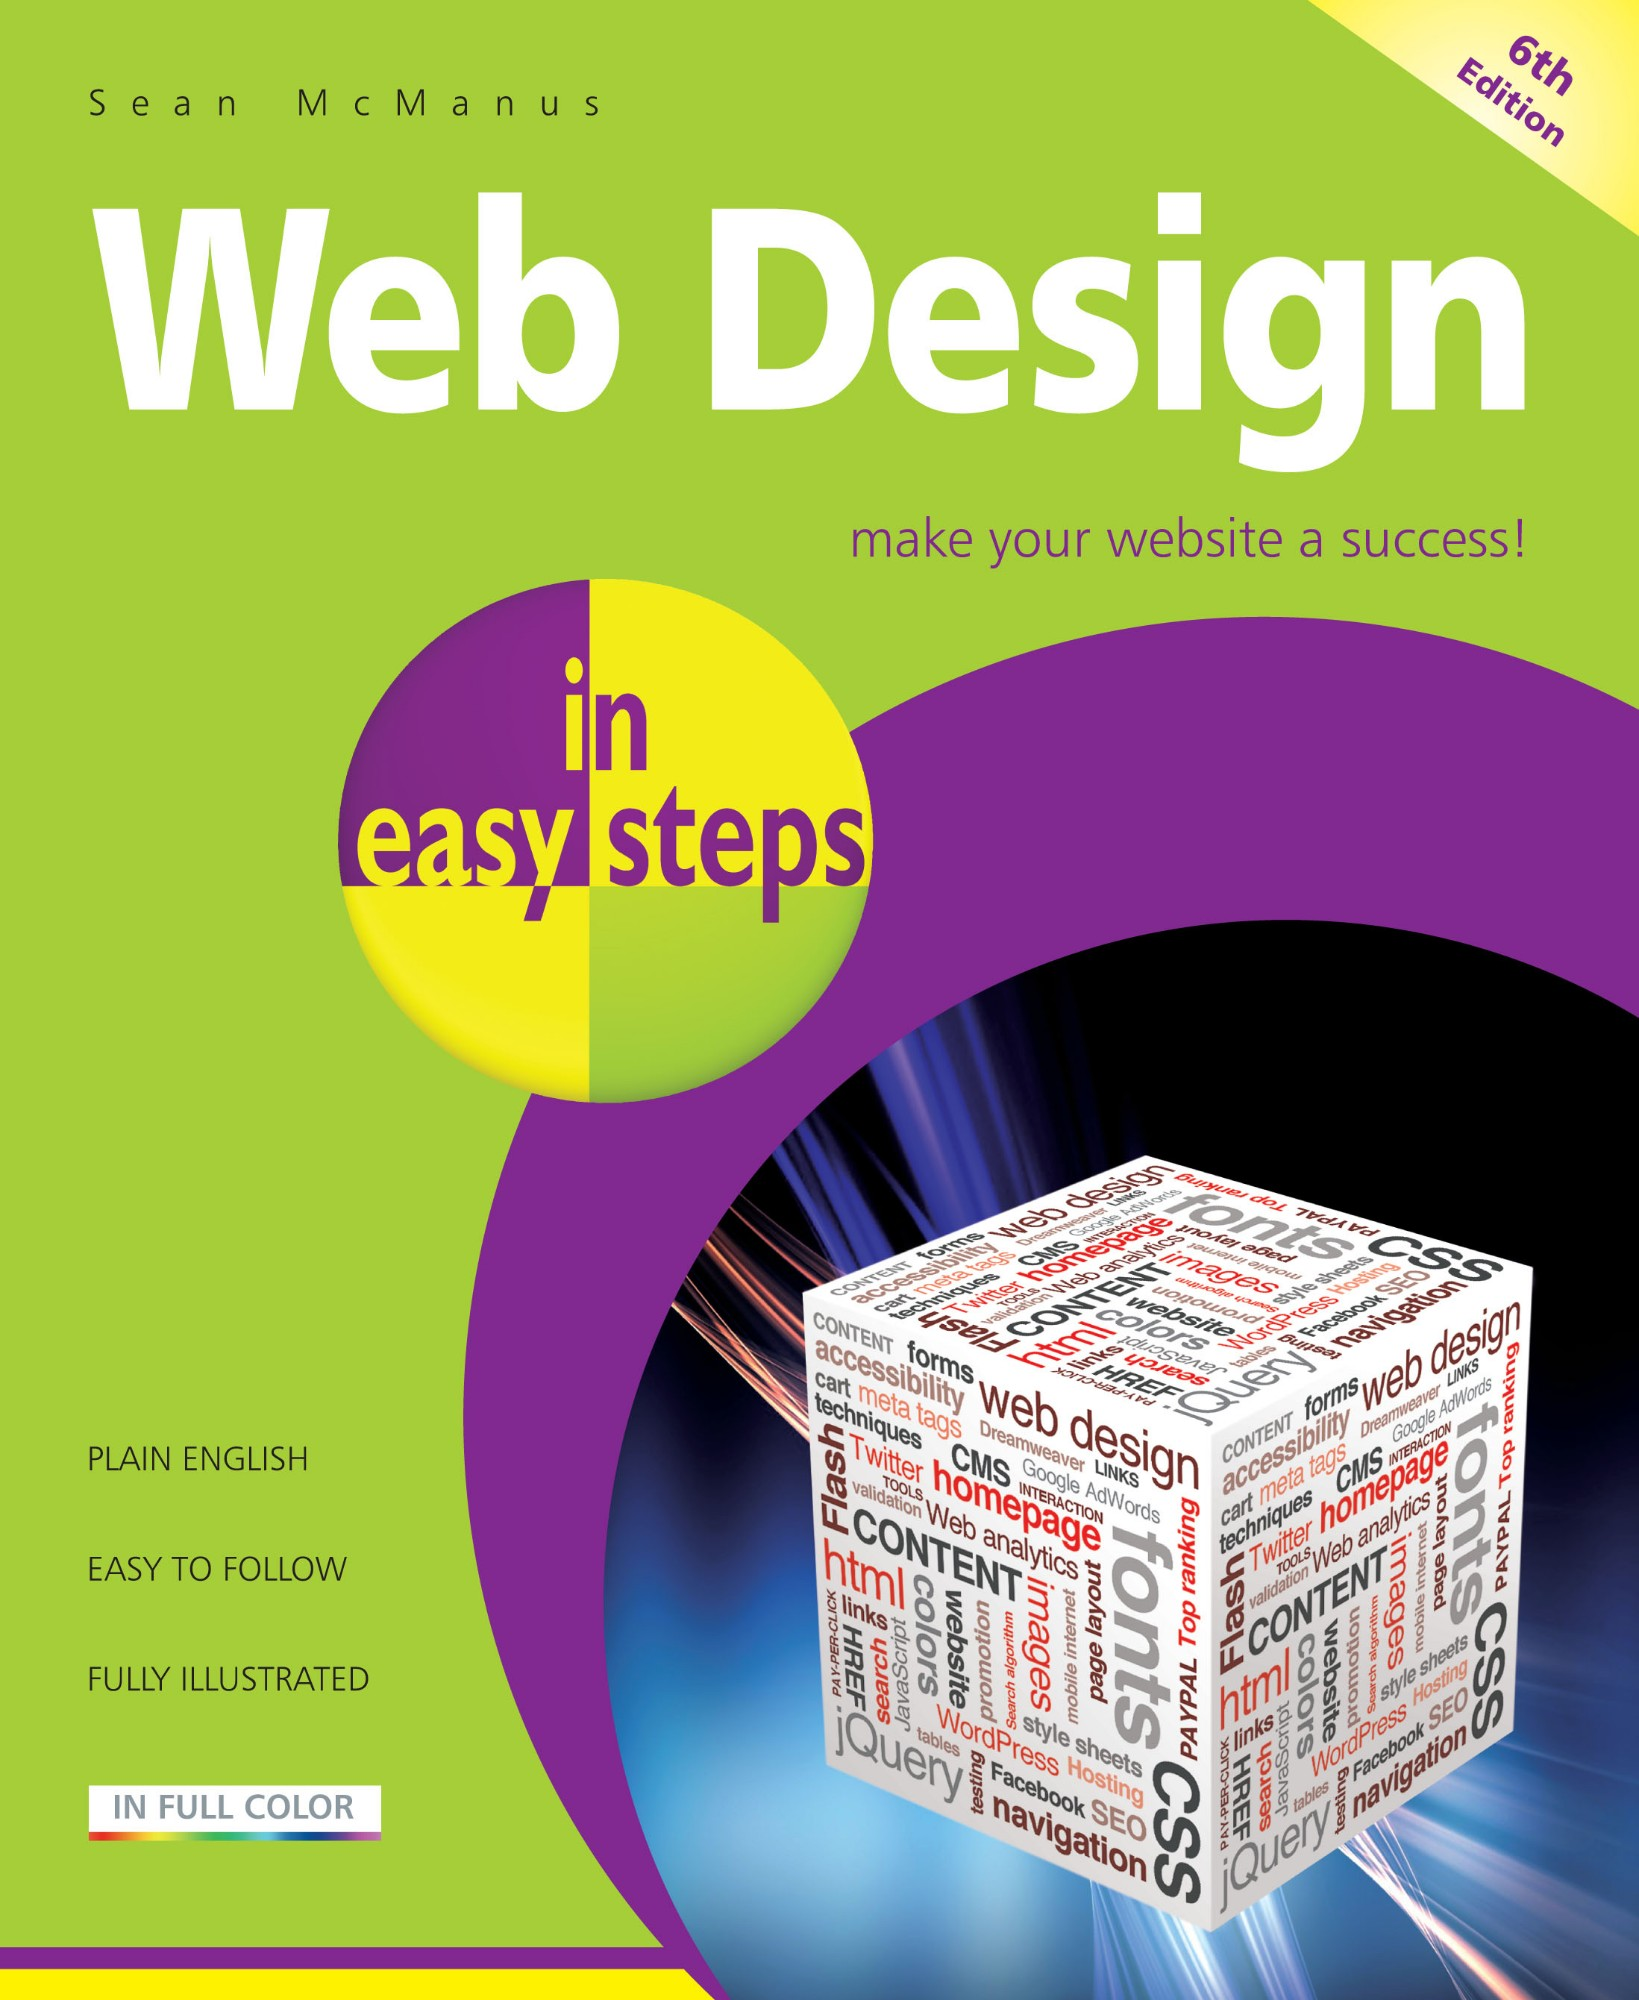 IN EASY STEPS Maplin Manual Web Design Make Your Website A Success In Easy Steps Illustrated